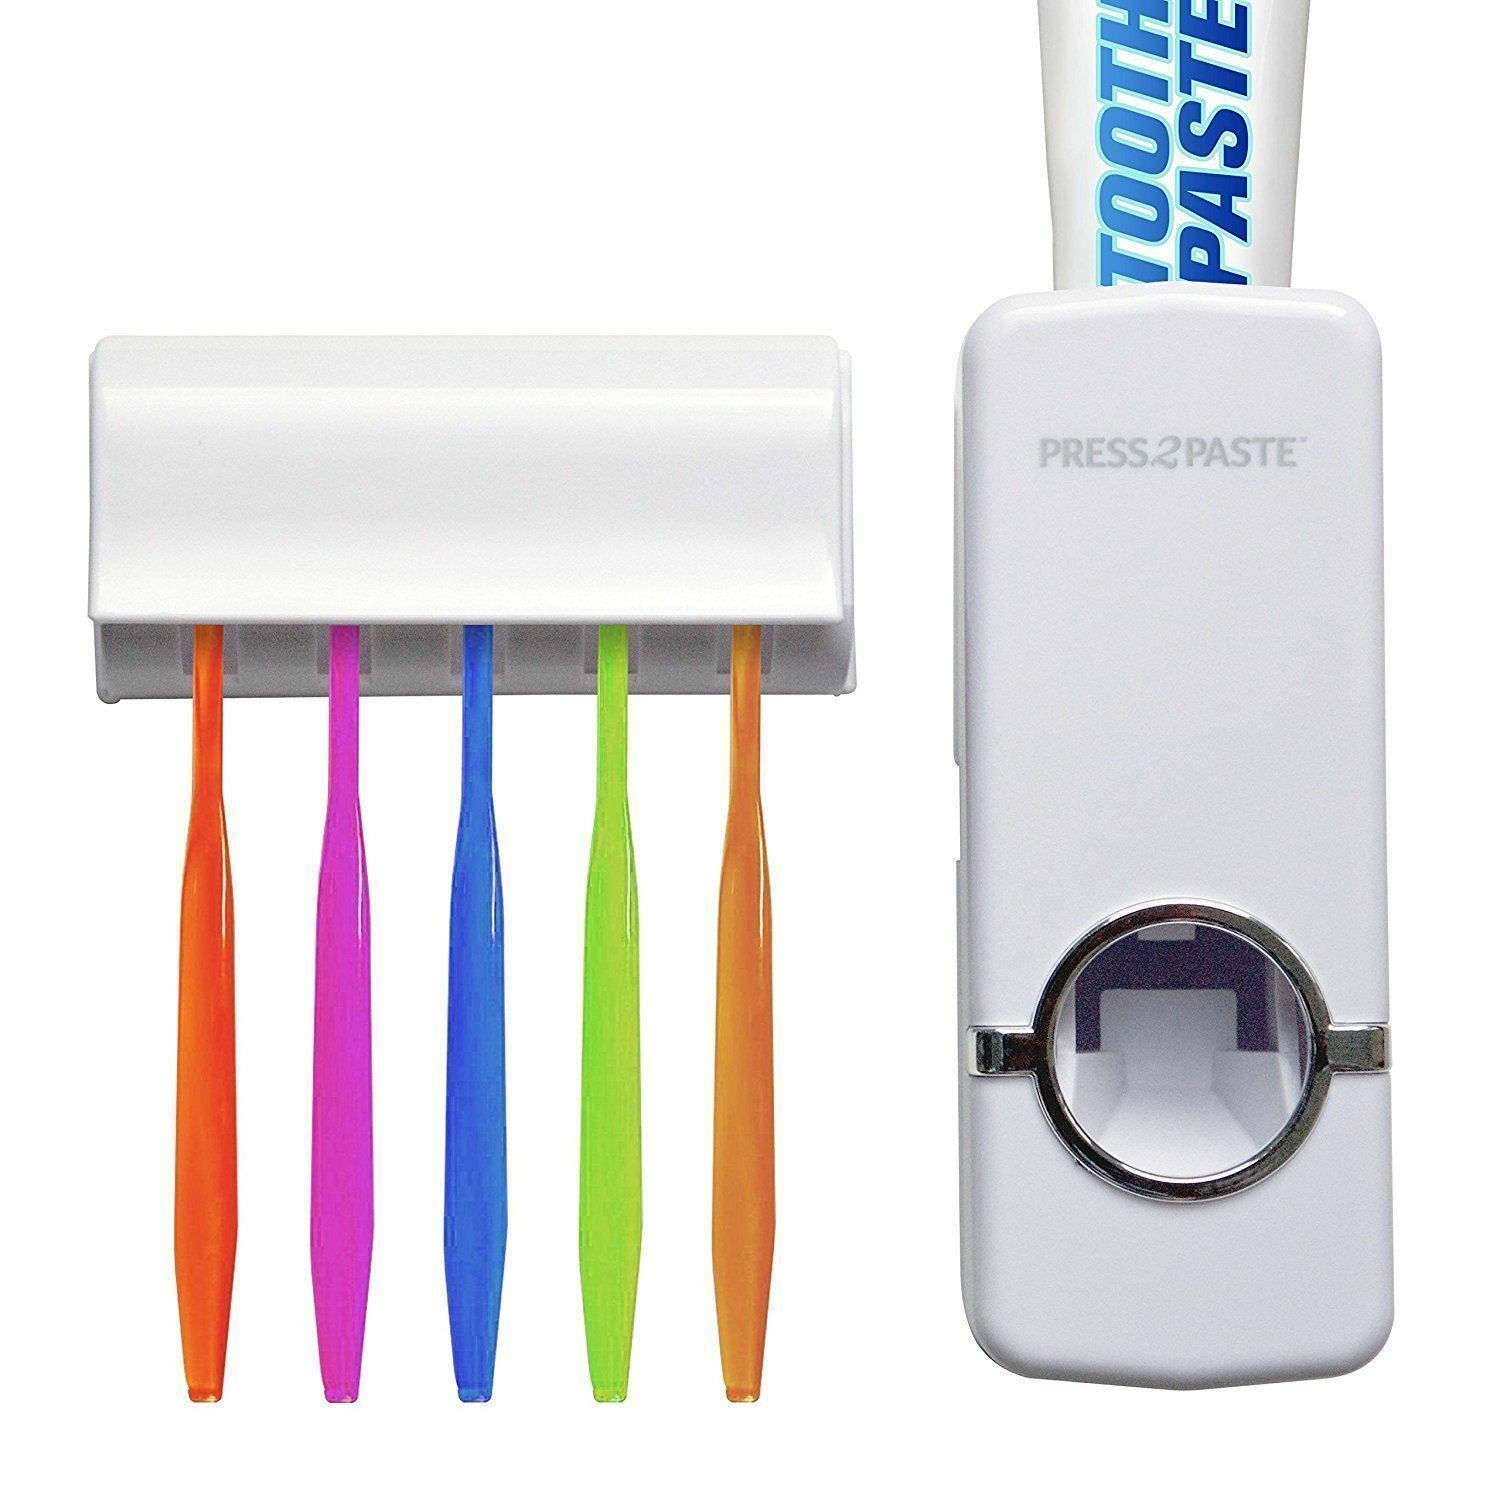 Press 2 Paste - Hands Free Automatic Toothpaste Dispenser an